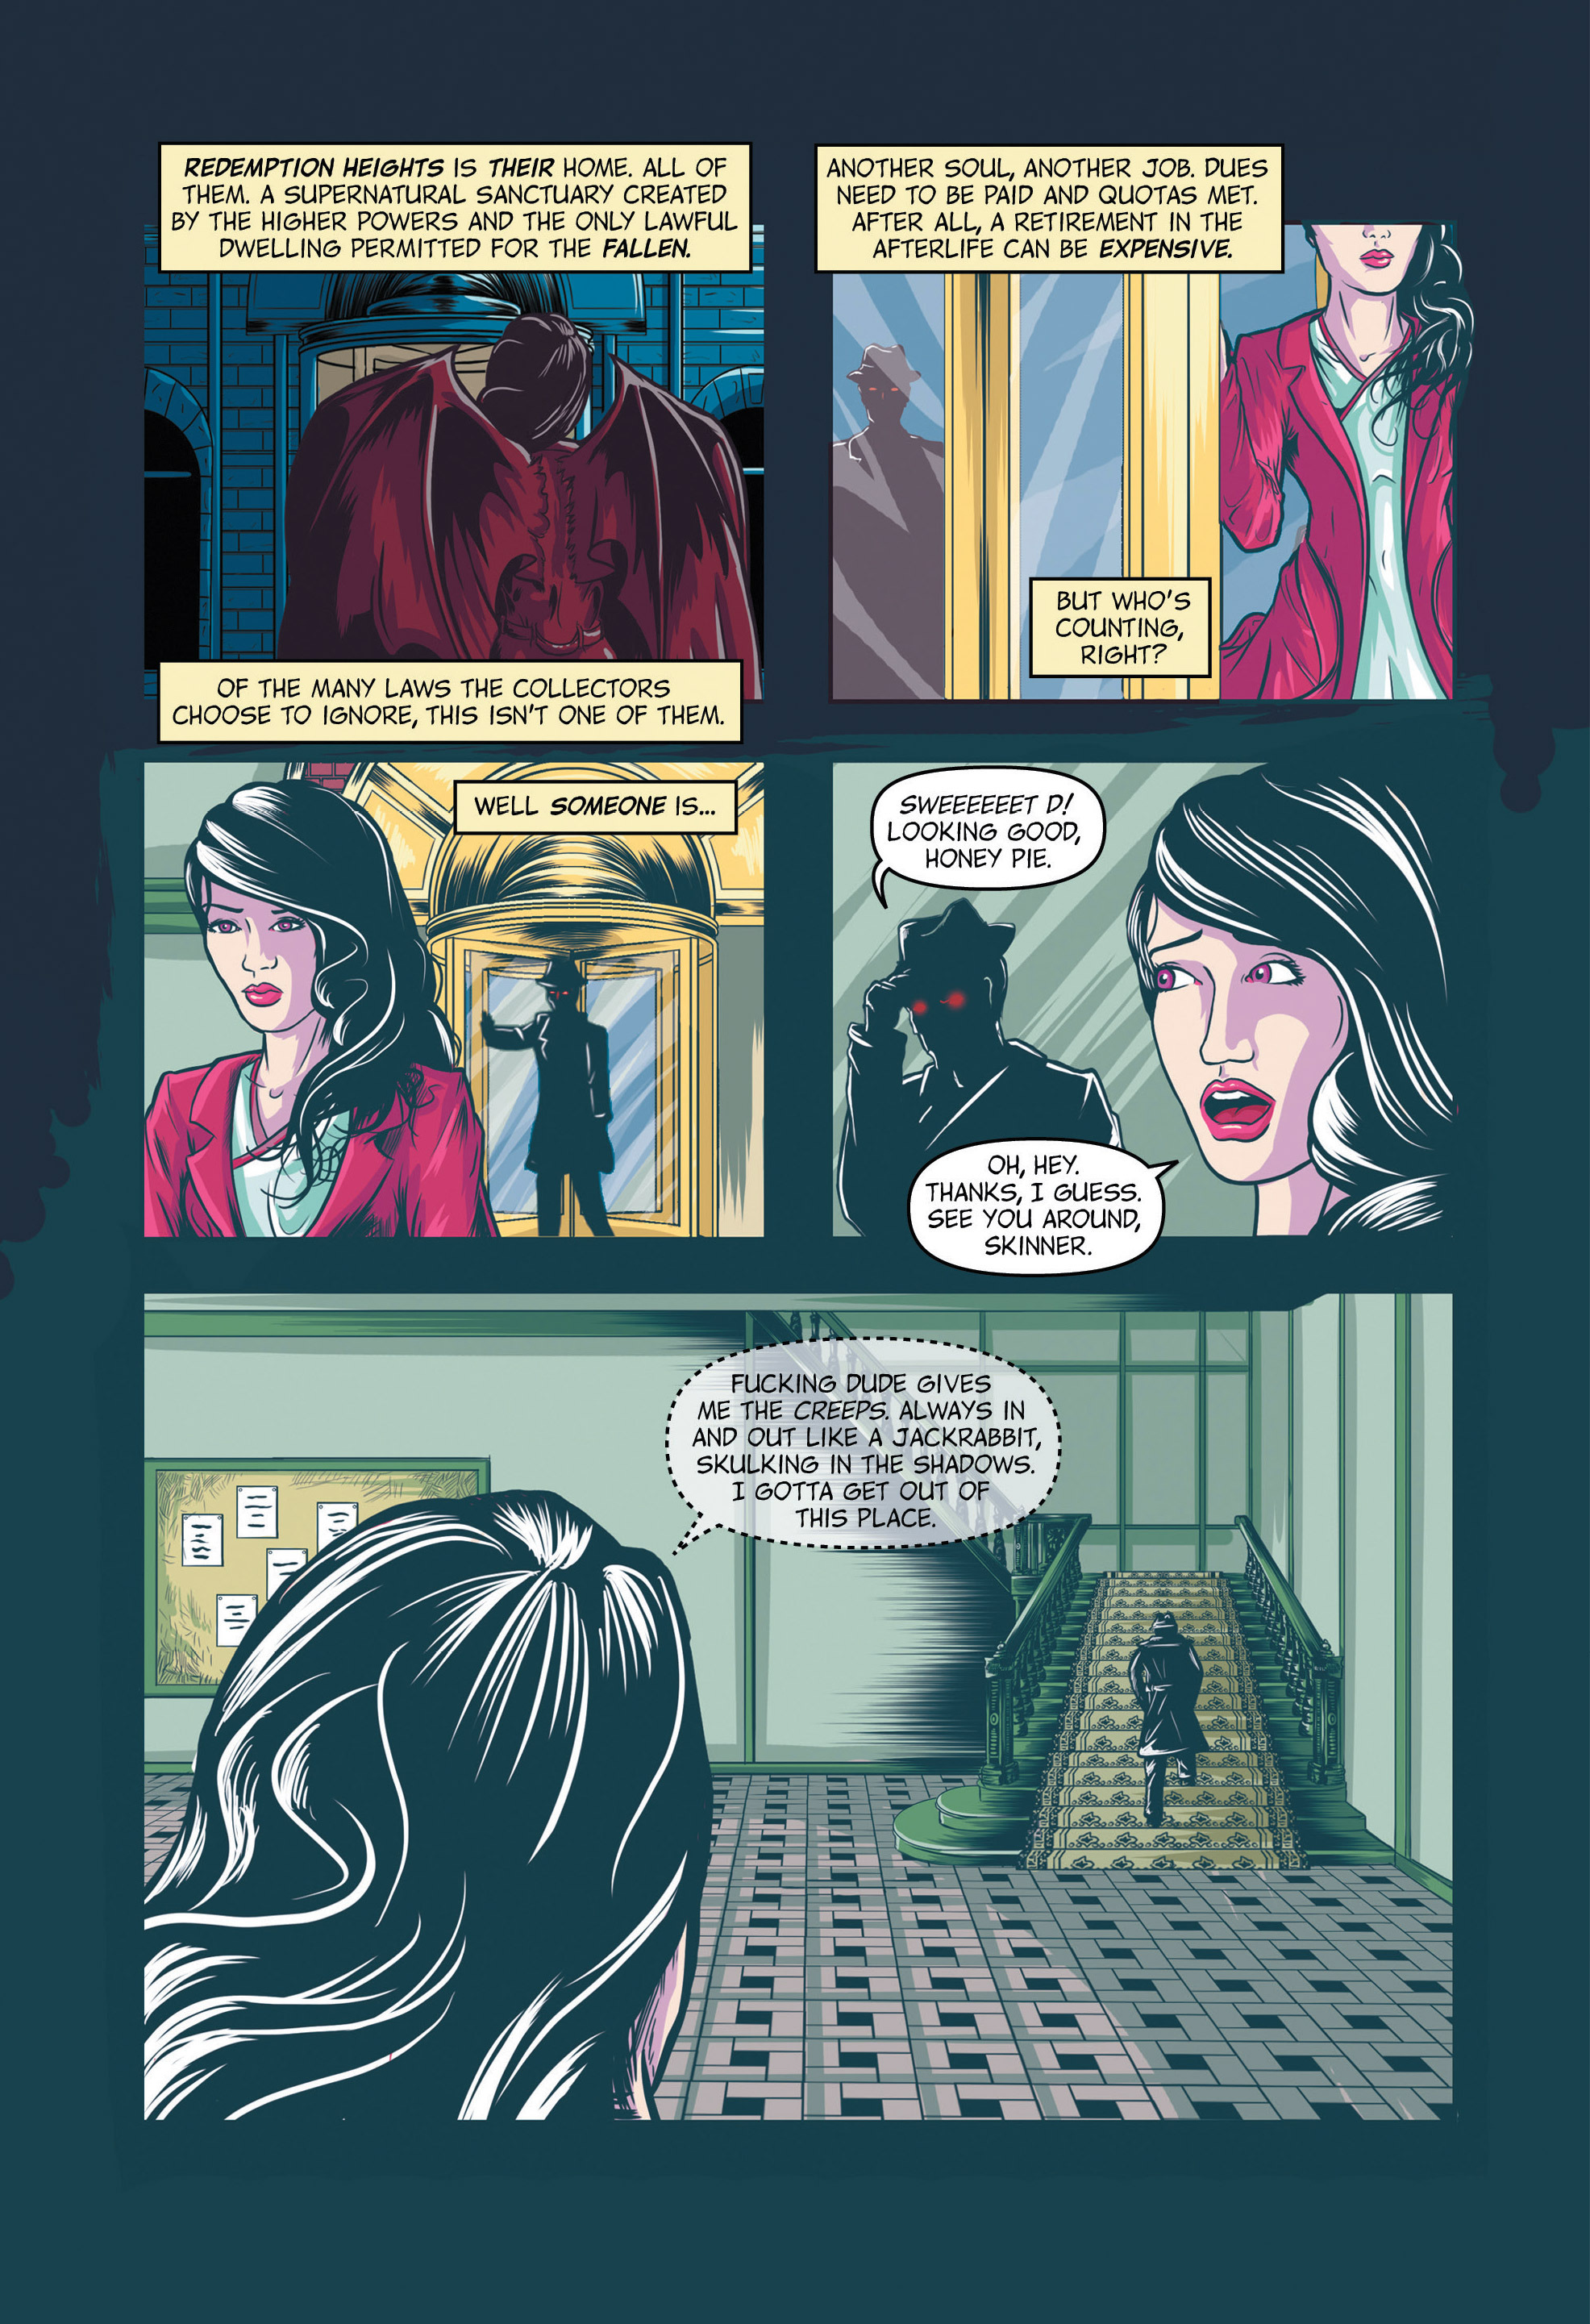 Read online Redemption Heights comic -  Issue # Full - 9